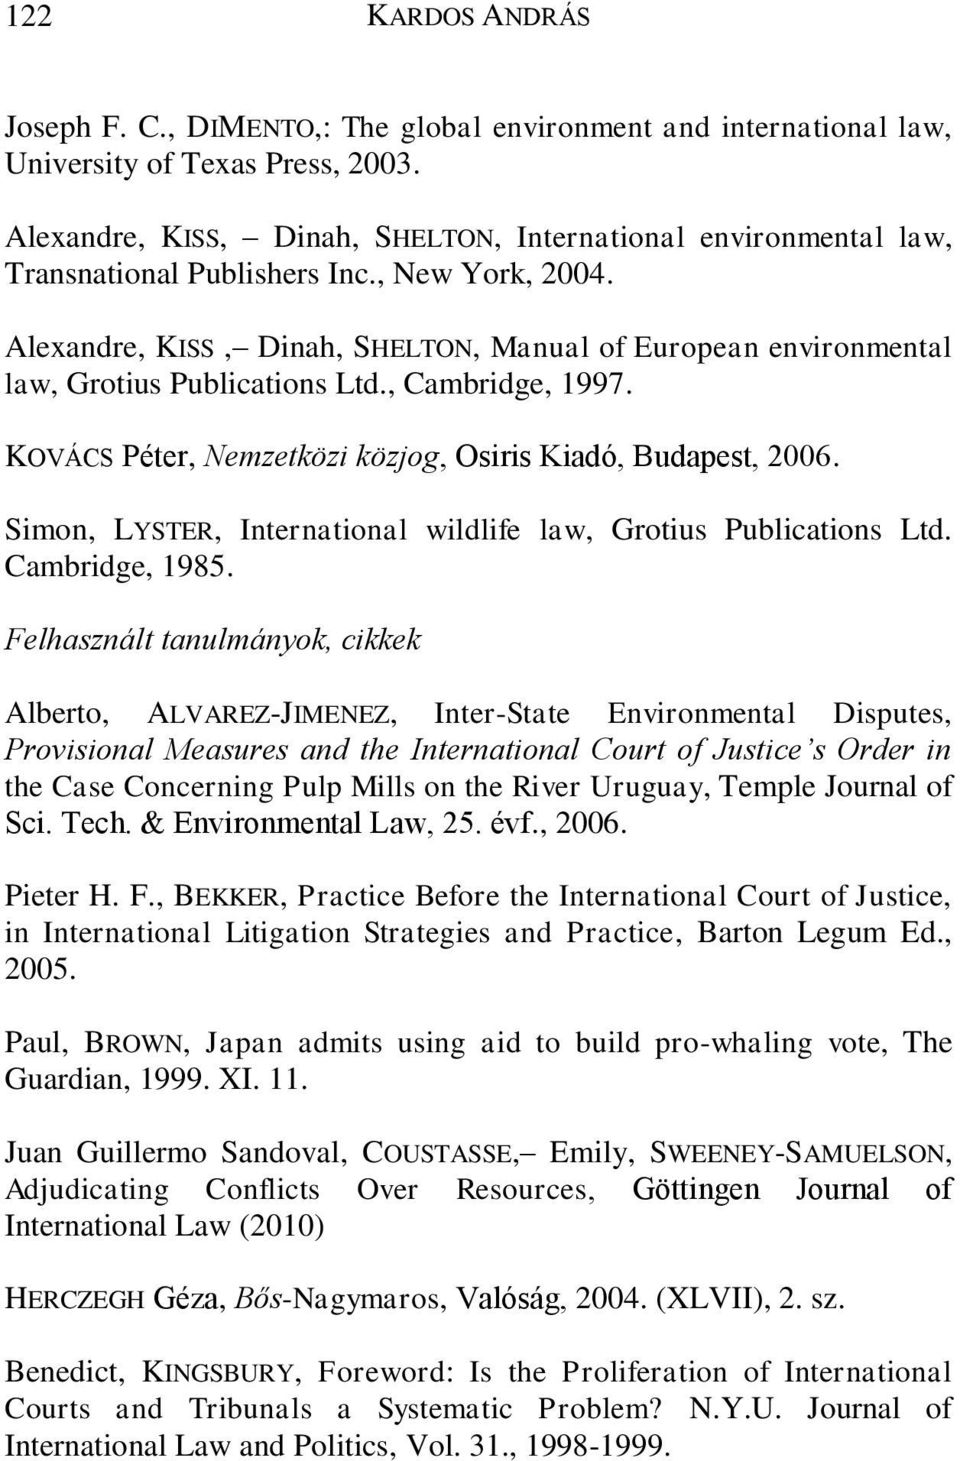 Alexandre, KISS, Dinah, SHELTON, Manual of European environmental law, Grotius Publications Ltd., Cambridge, 1997. KOVÁCS Péter, Nemzetközi közjog, Osiris Kiadó, Budapest, 2006.